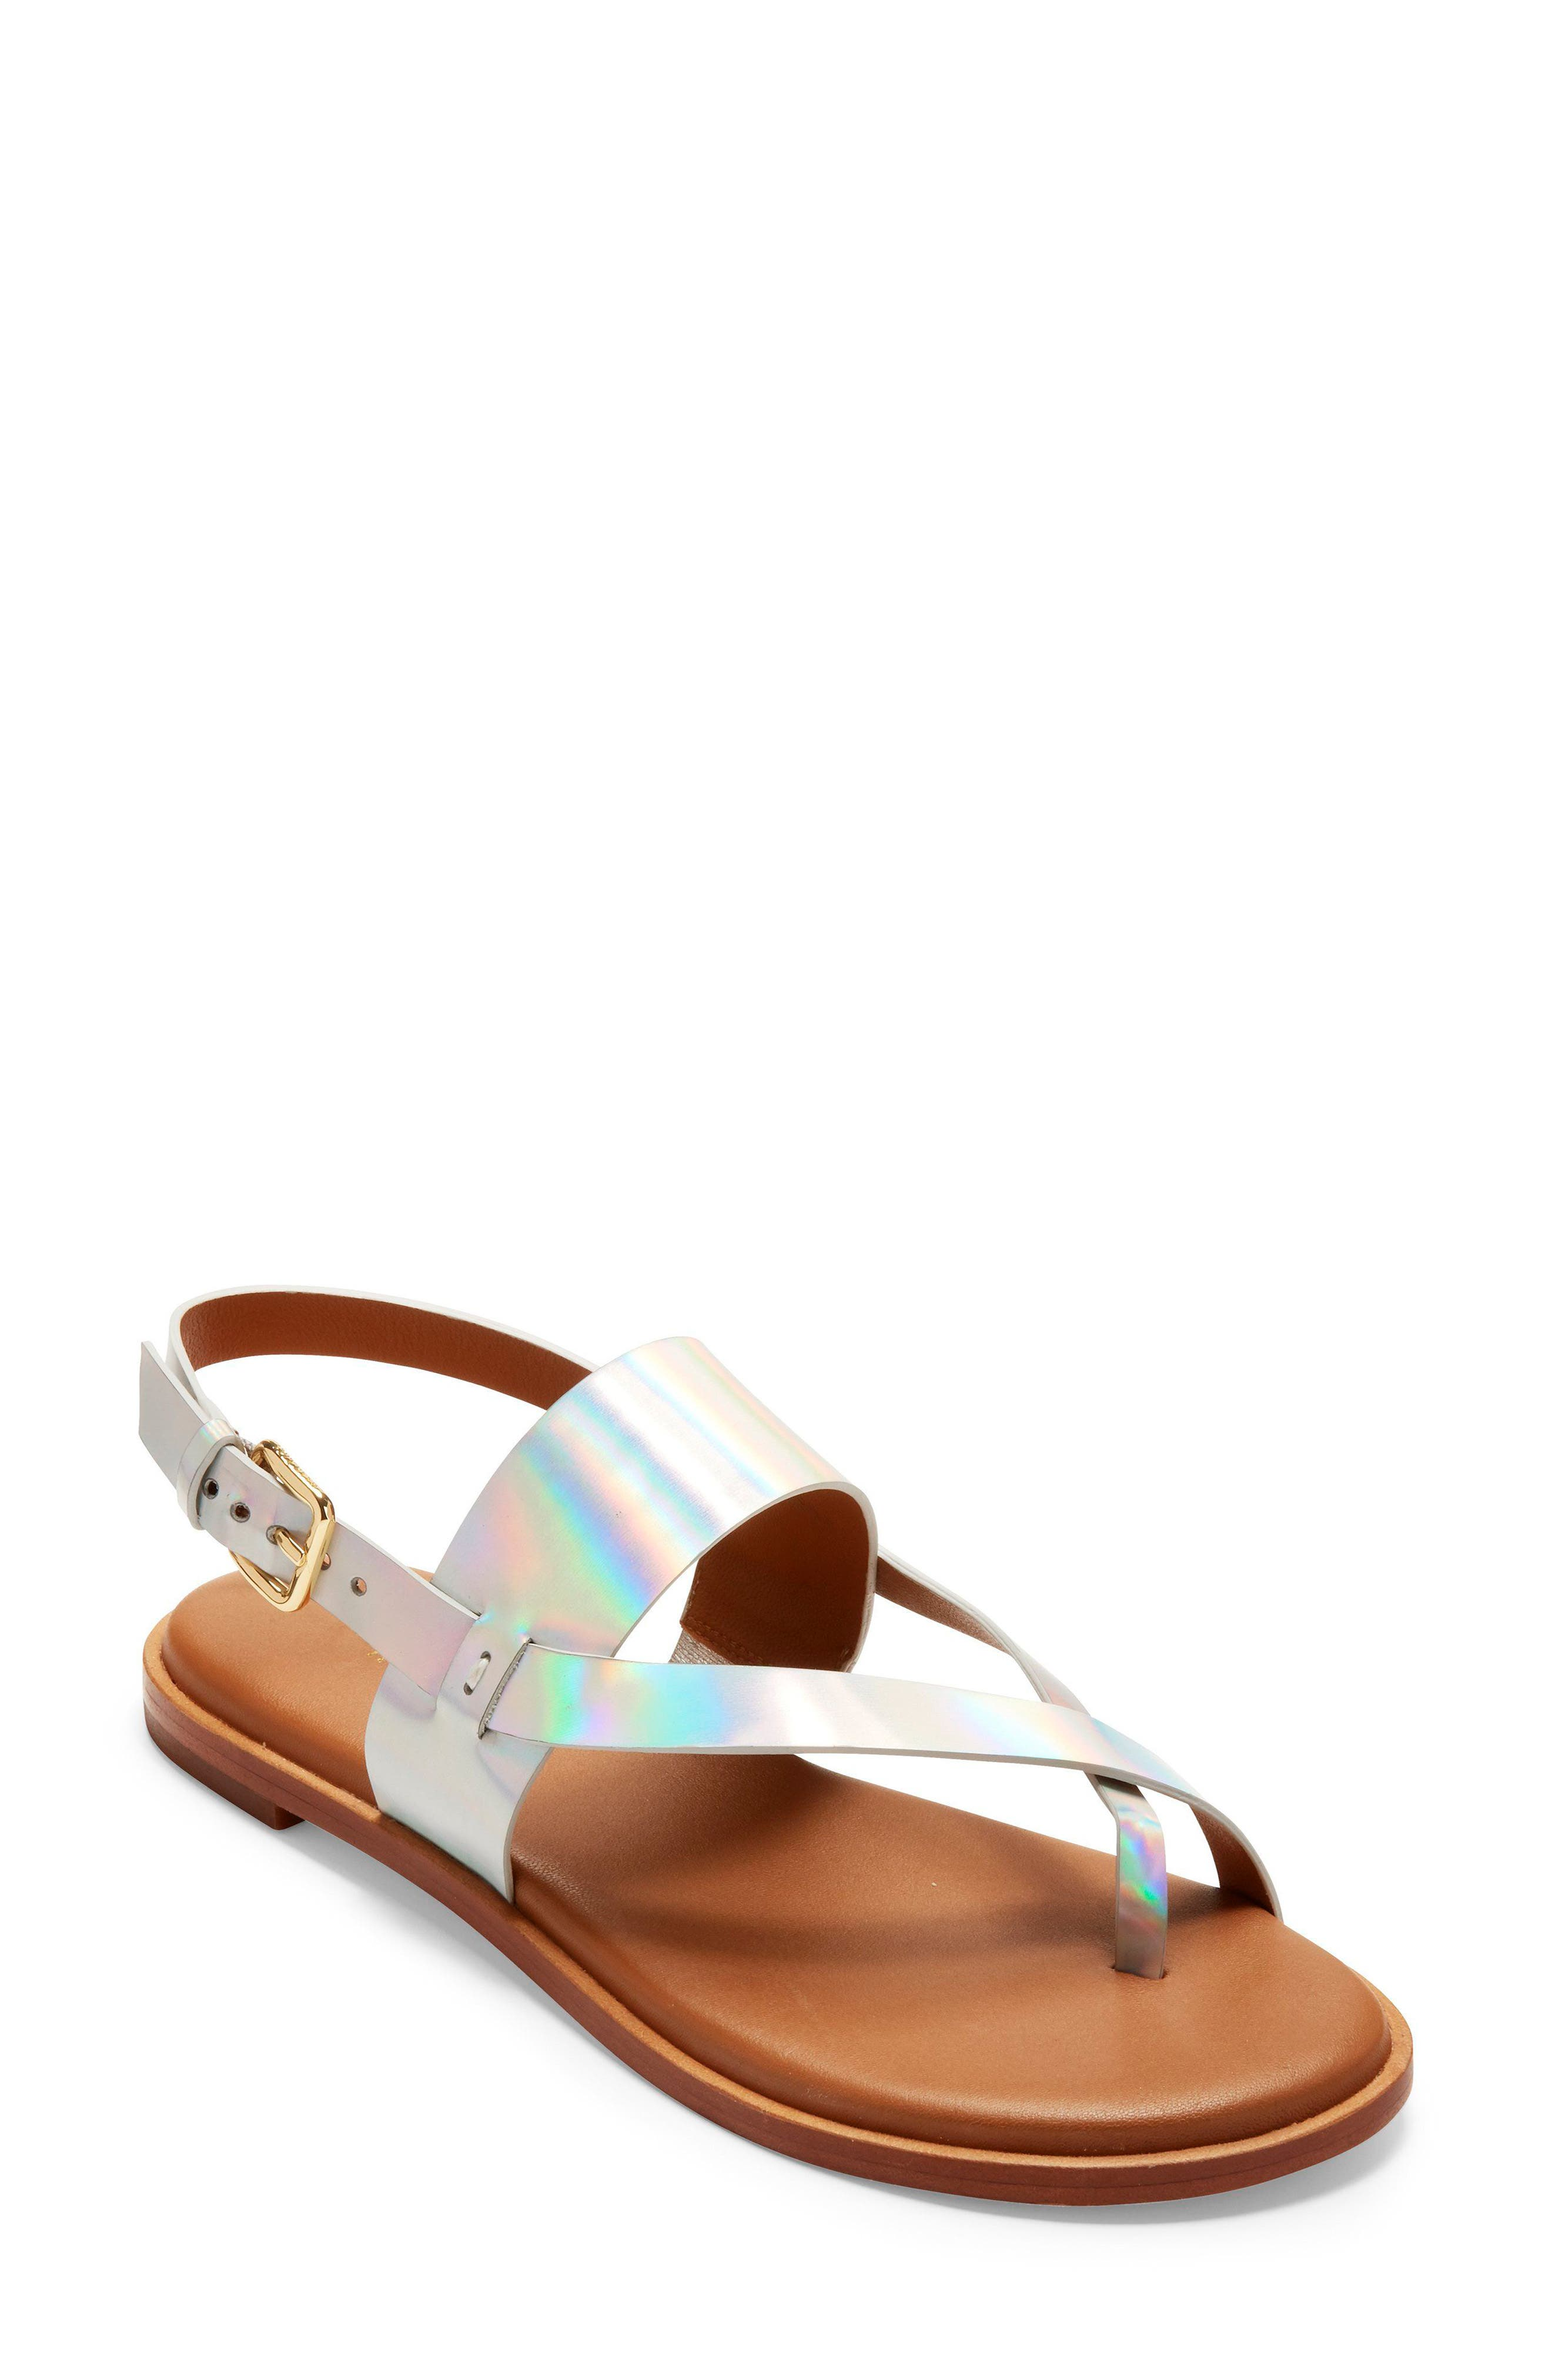 Anica Sandal,                         Main,                         color, Iridescent Leather